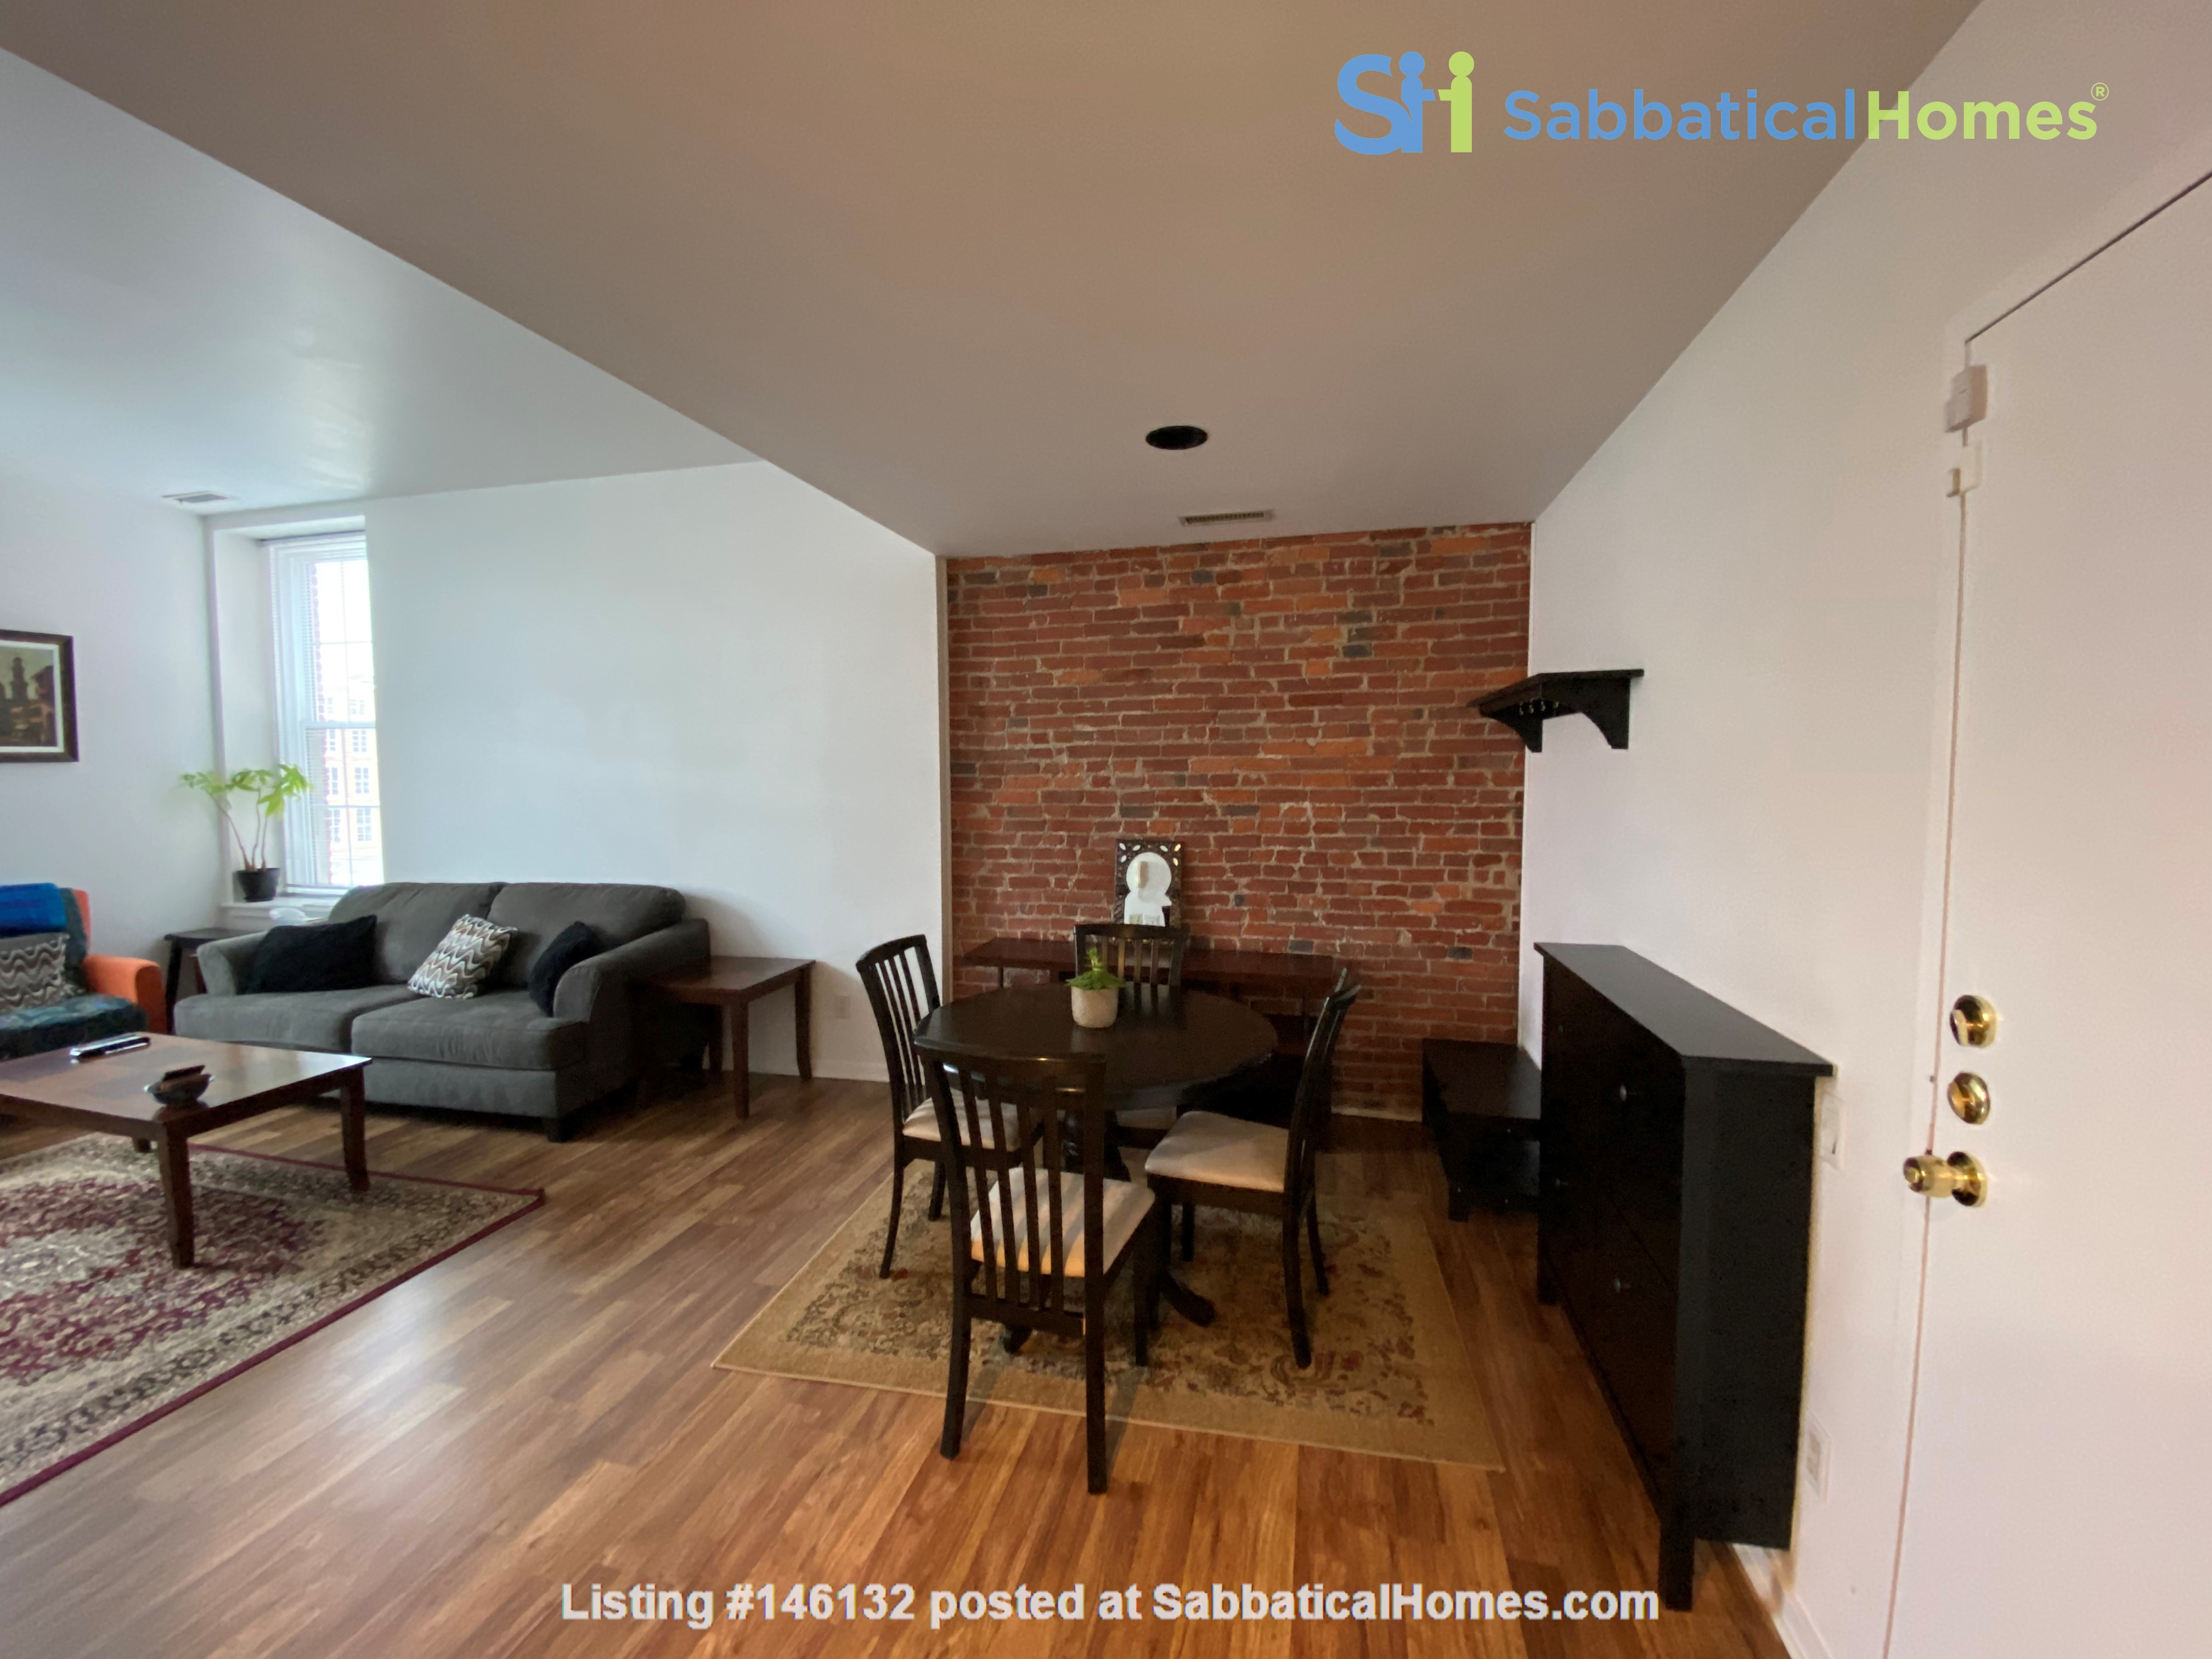 Sunny and bright old city 2 bedroom - near everything! Home Rental in Philadelphia 2